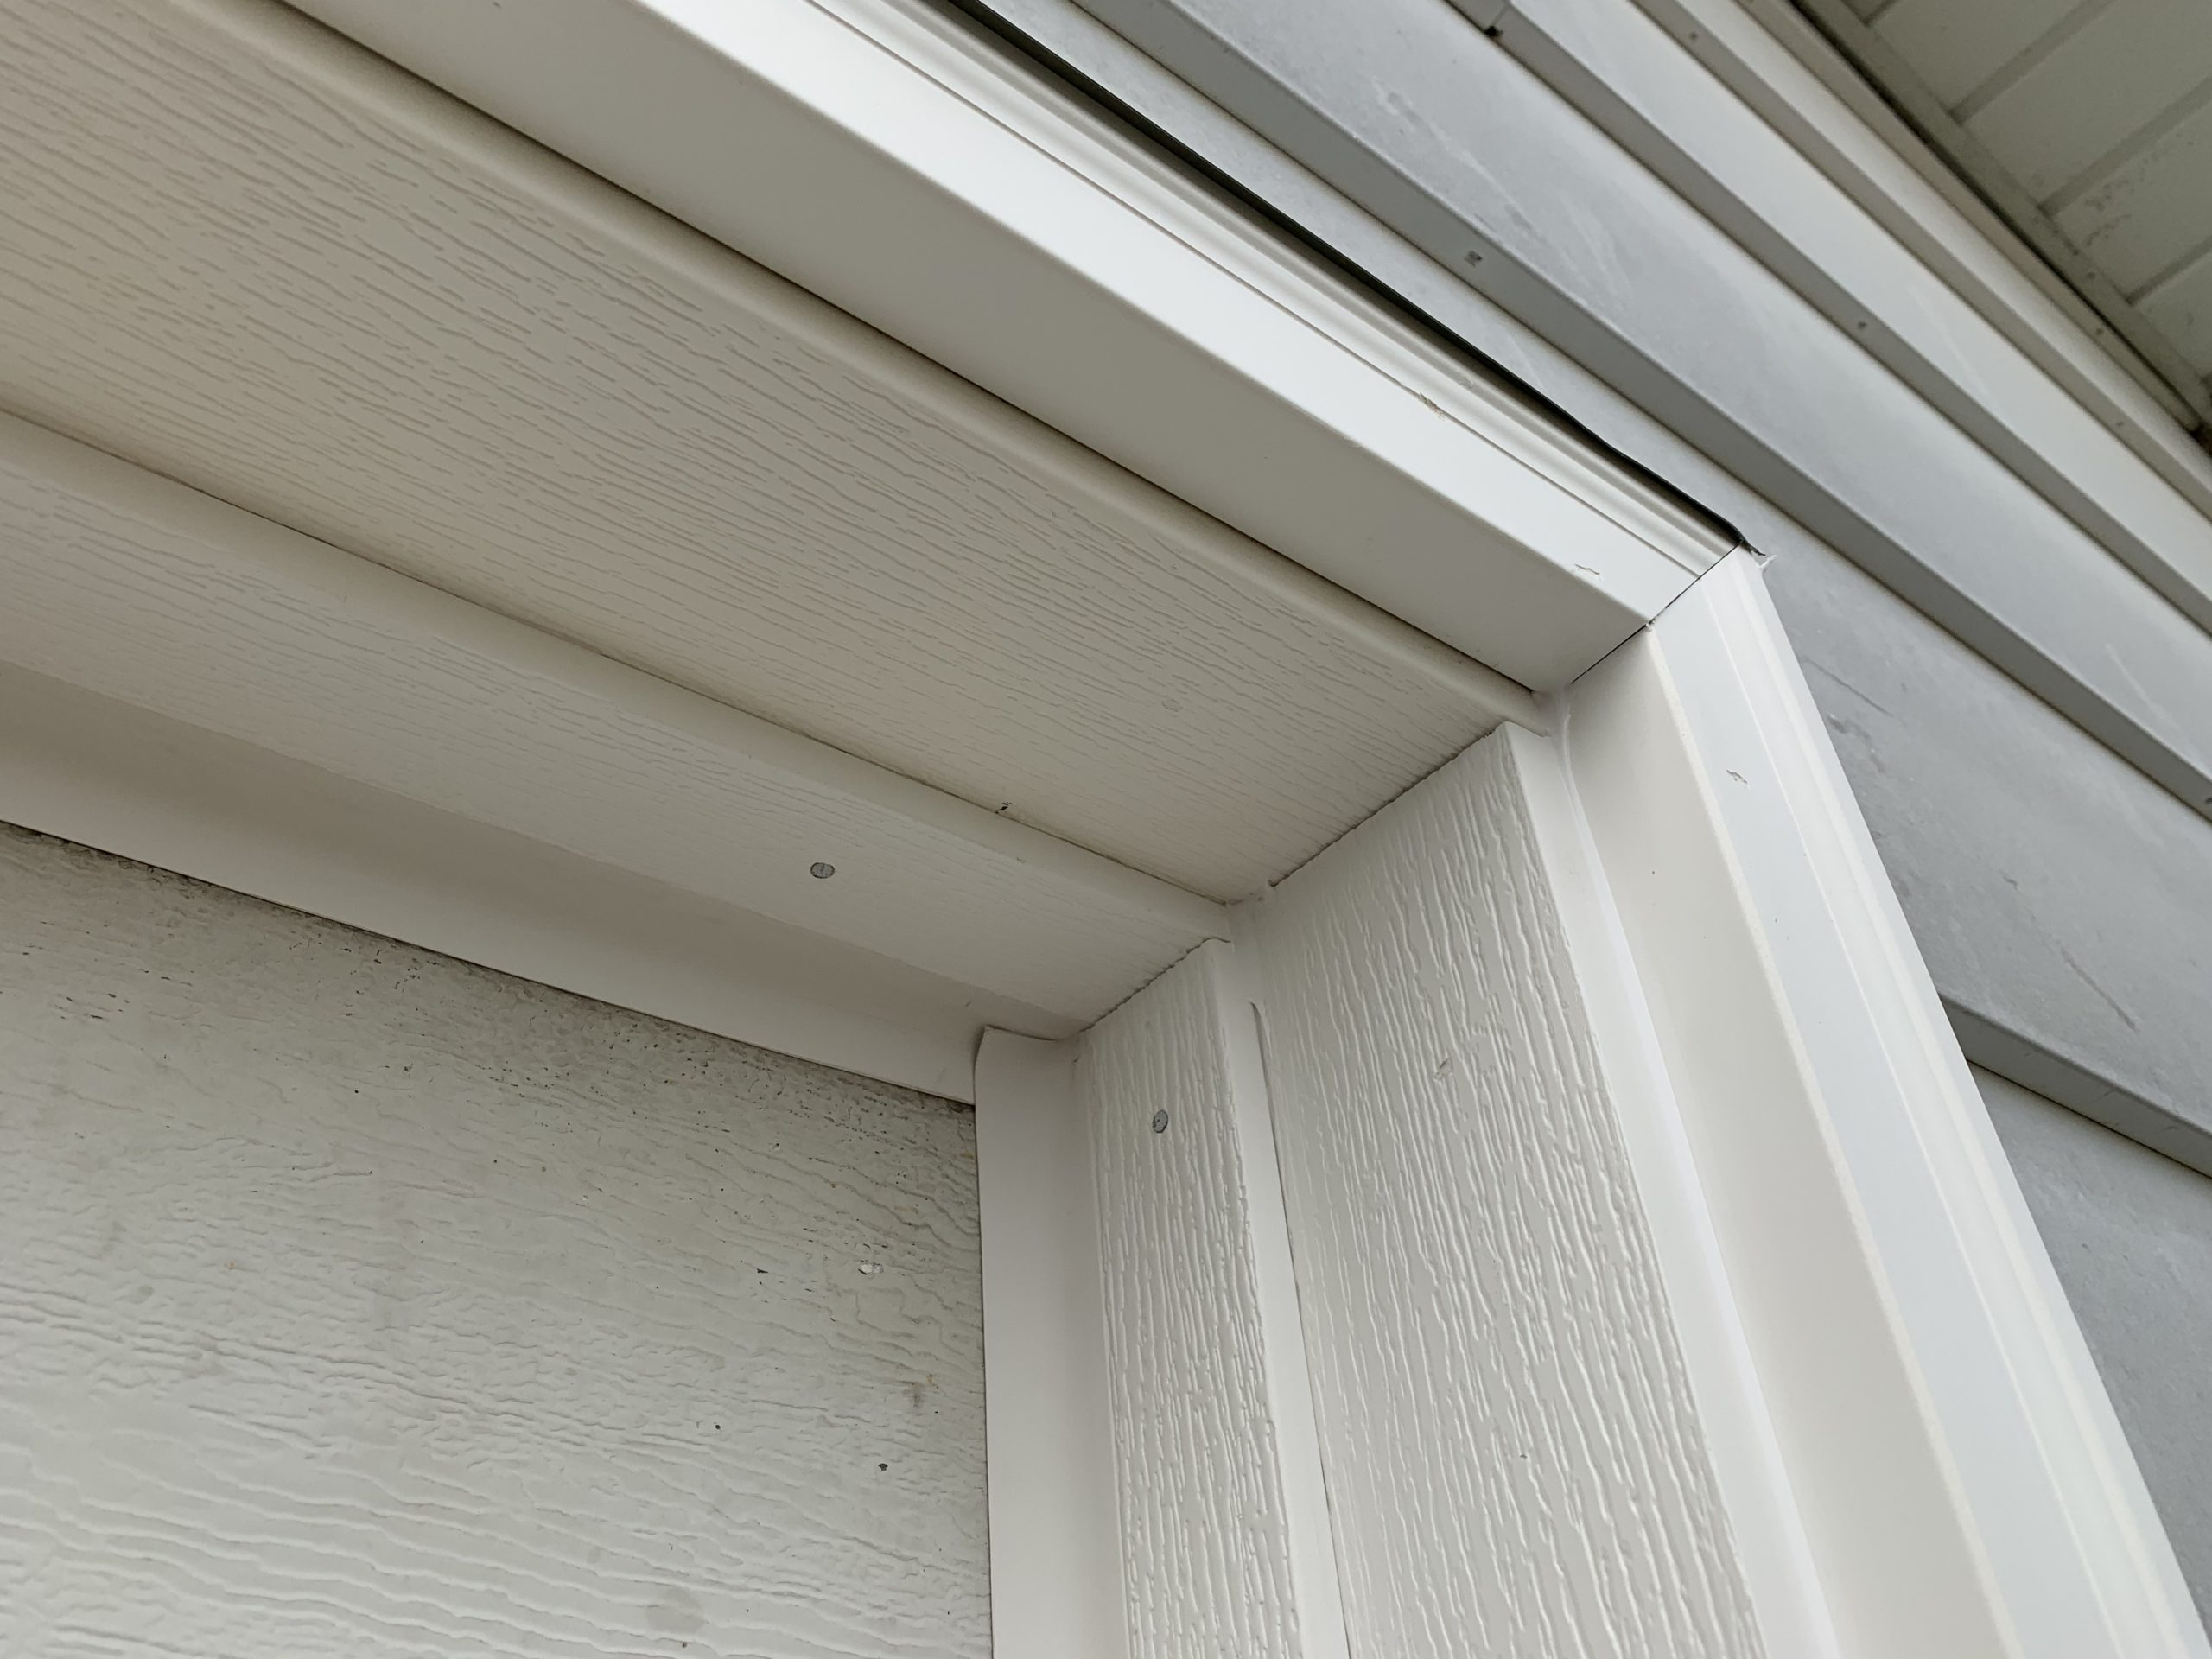 Garage Door Vinyl Trim Update – Edgerton, Ohio